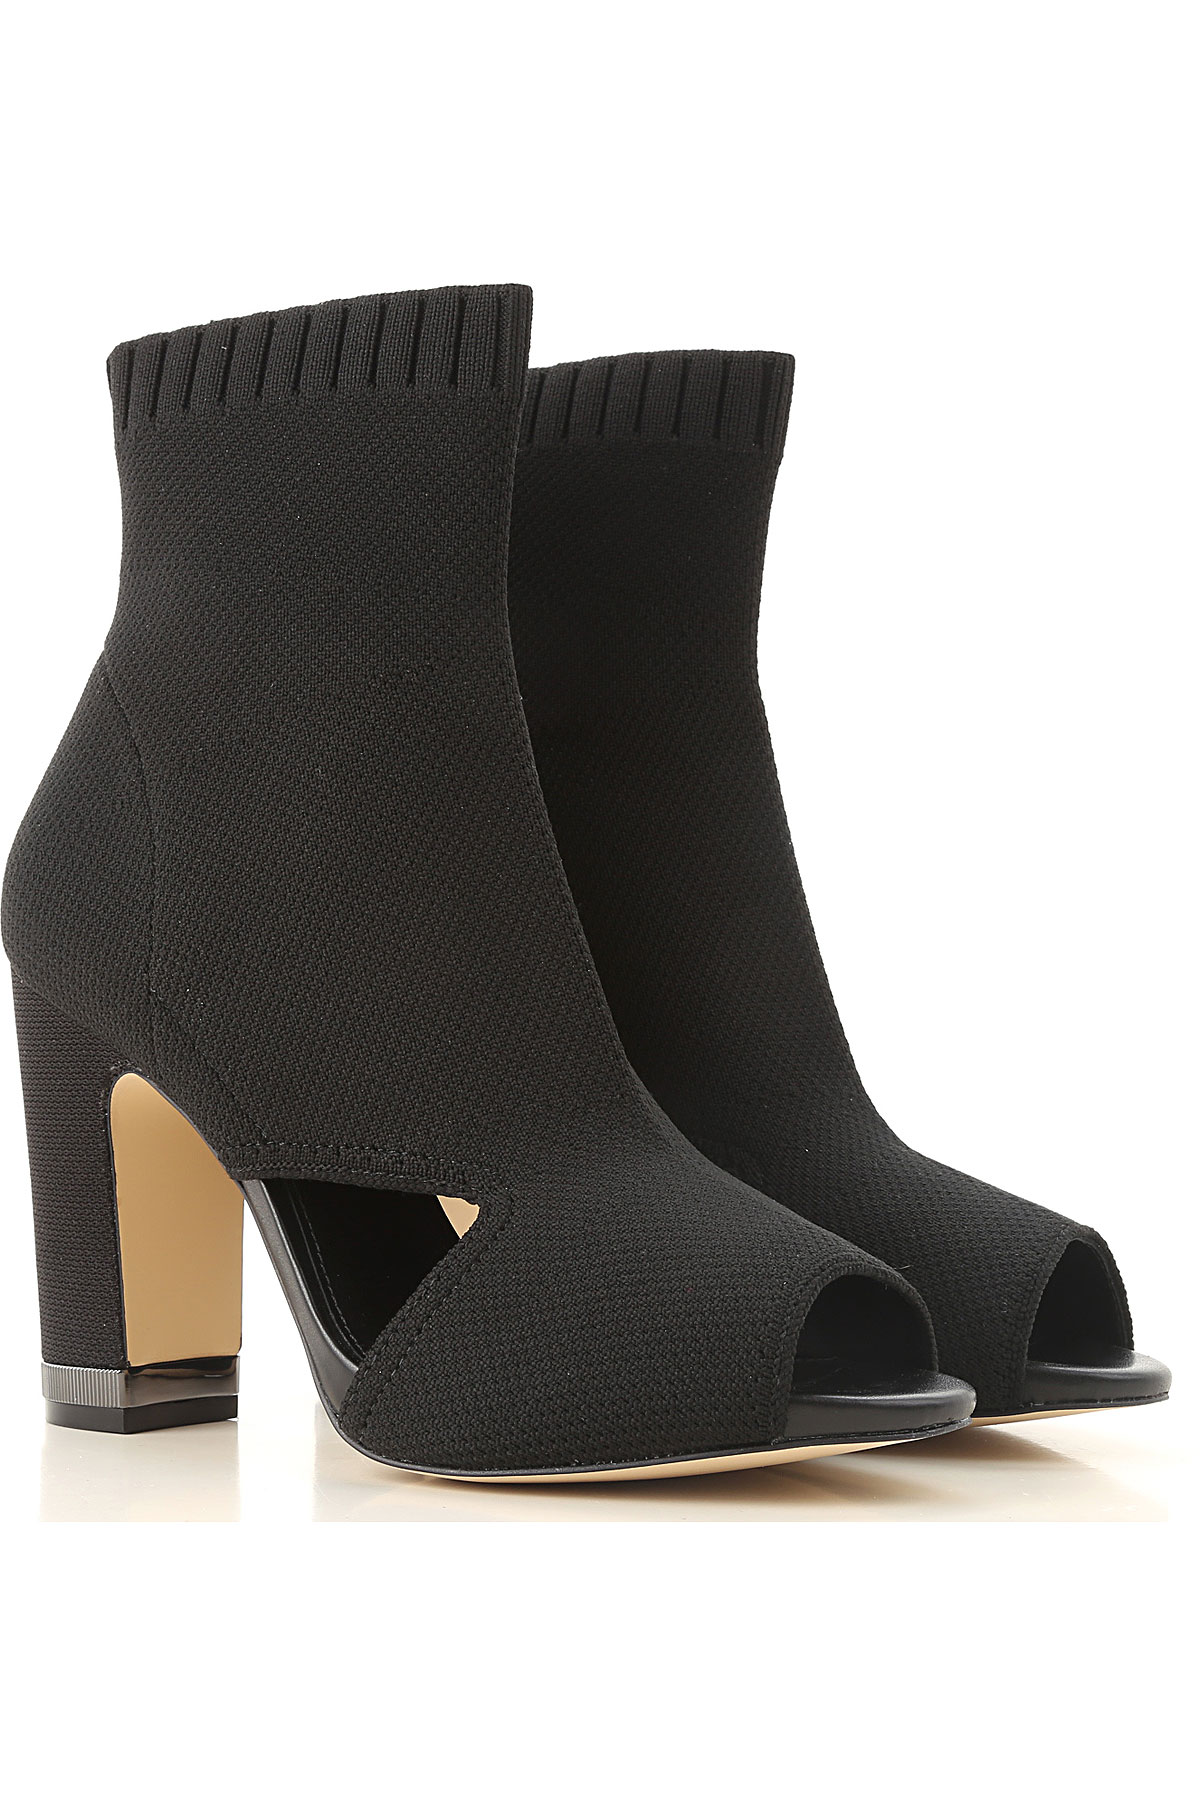 Michael Kors Boots for Women, Booties On Sale in Outlet, Black, Textile, 2019, 6.5 7